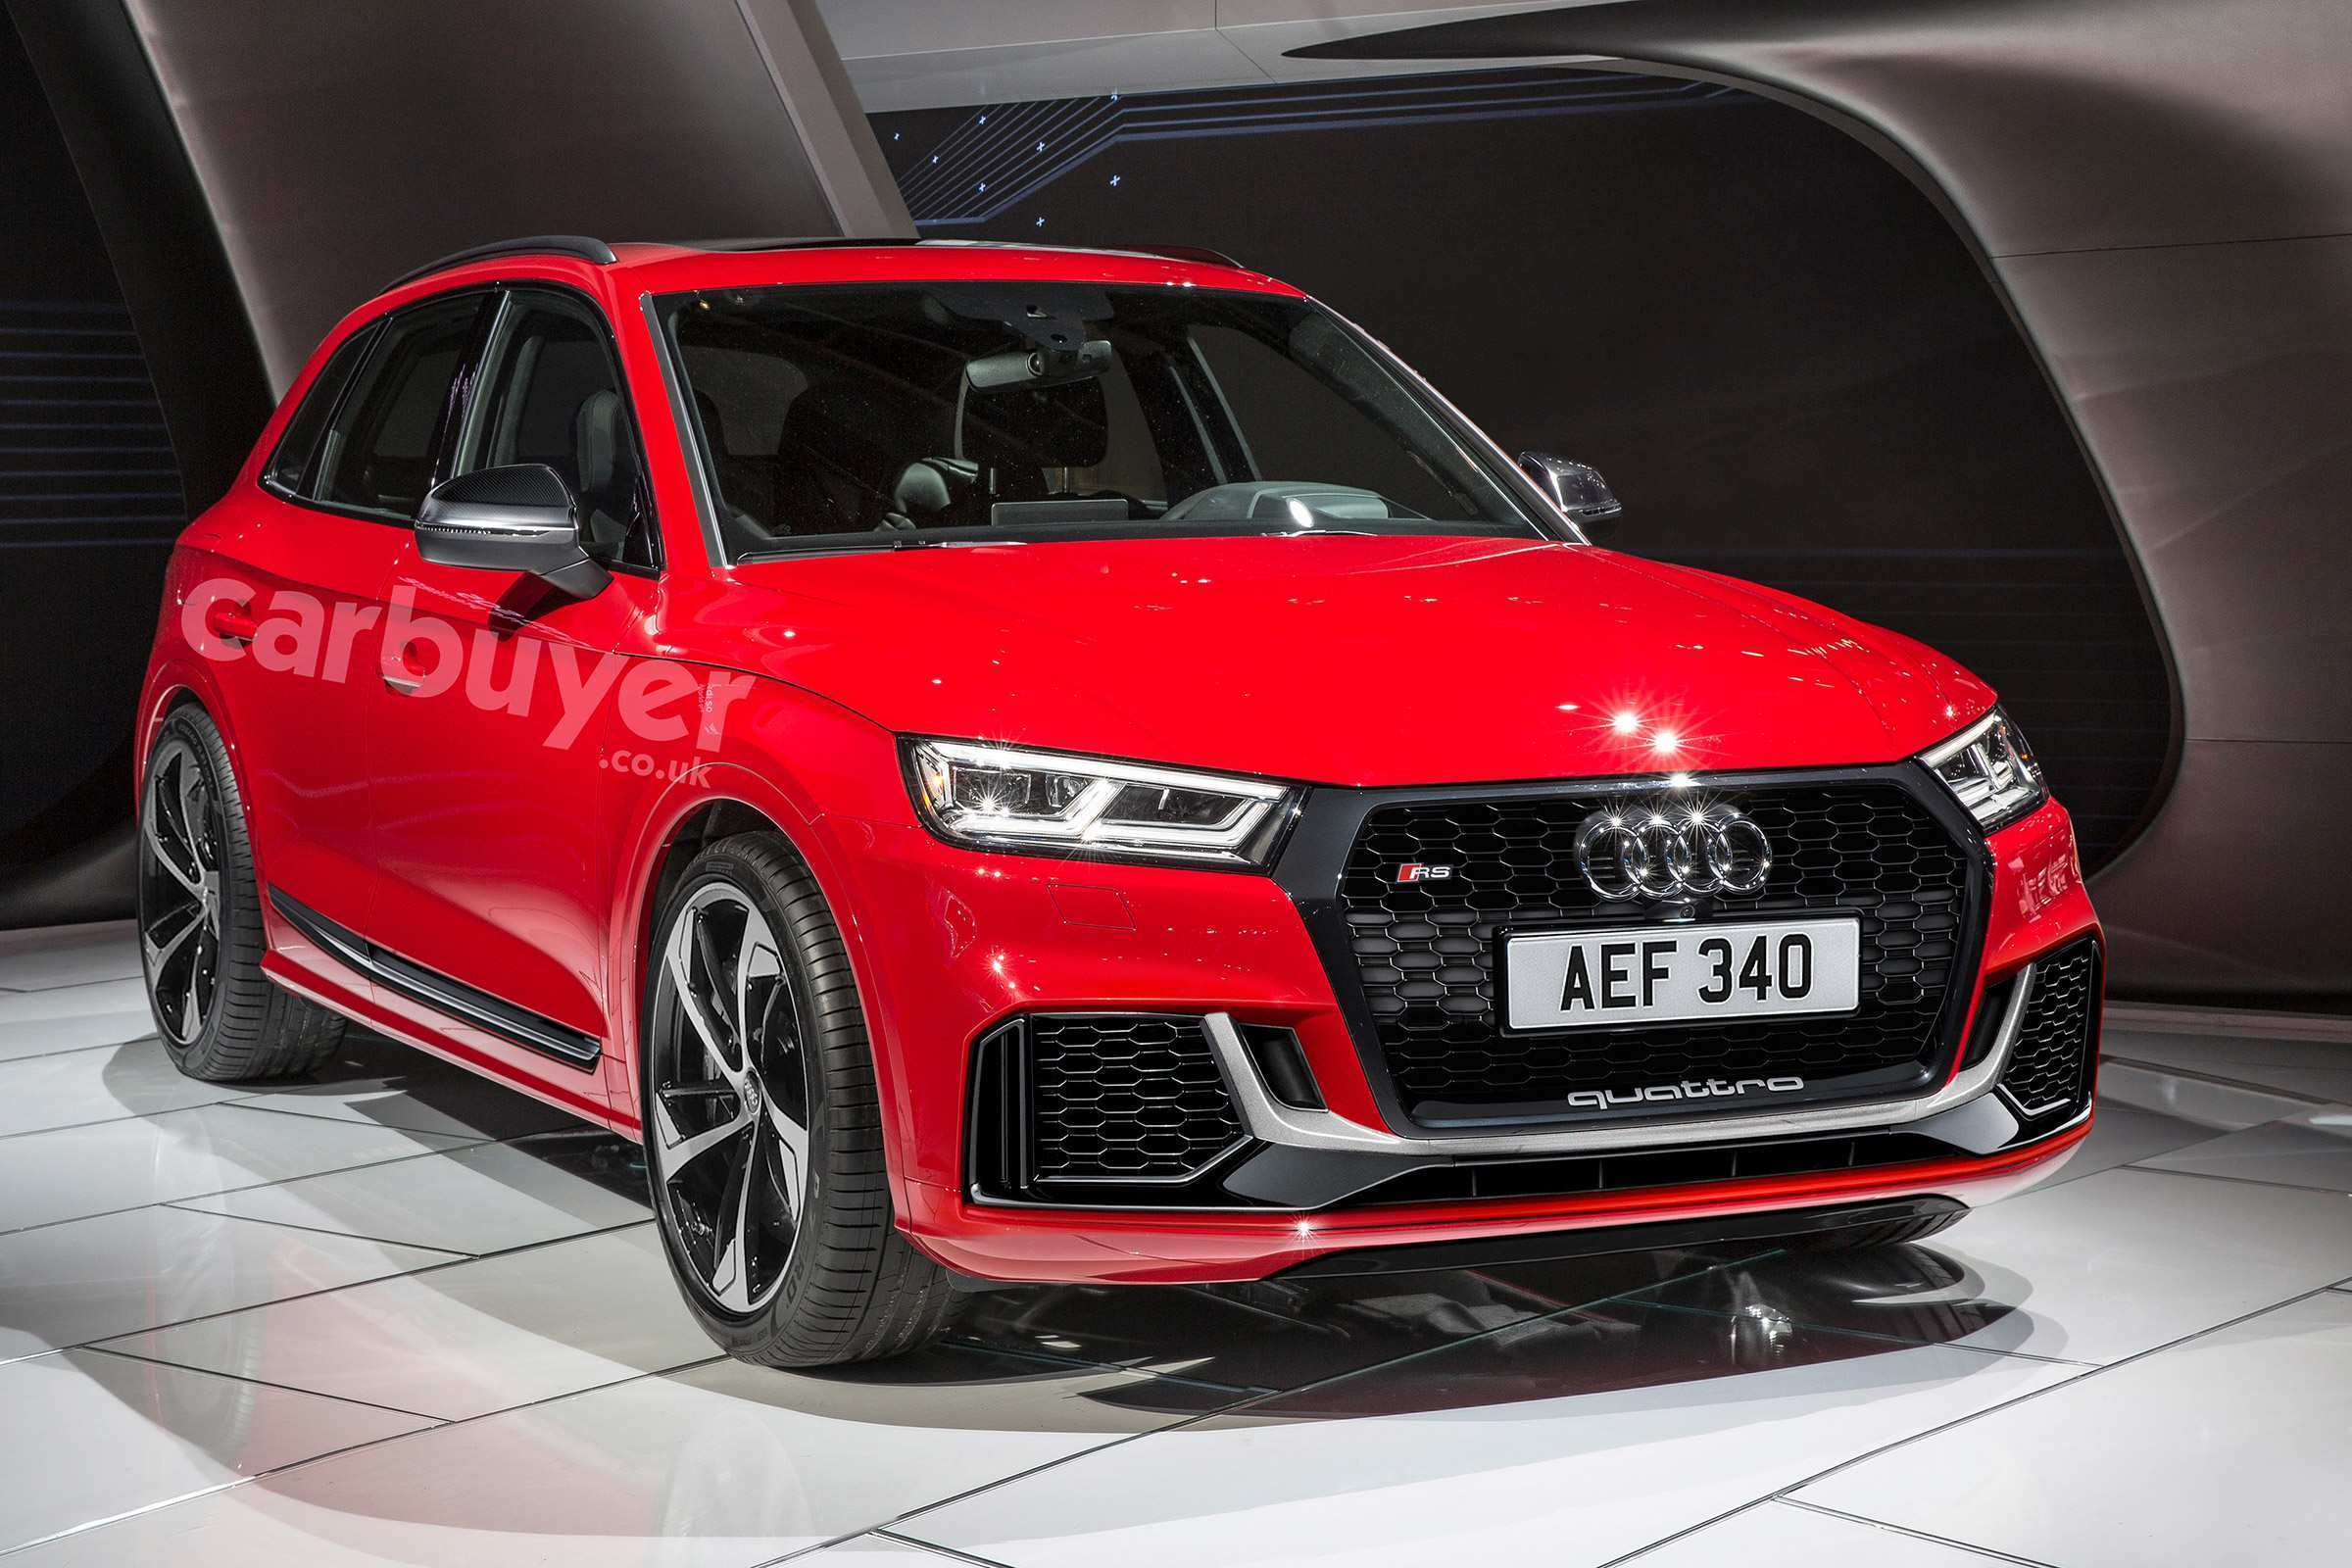 64 Gallery of New New Audi 2019 Models New Release Spy Shoot for New New Audi 2019 Models New Release